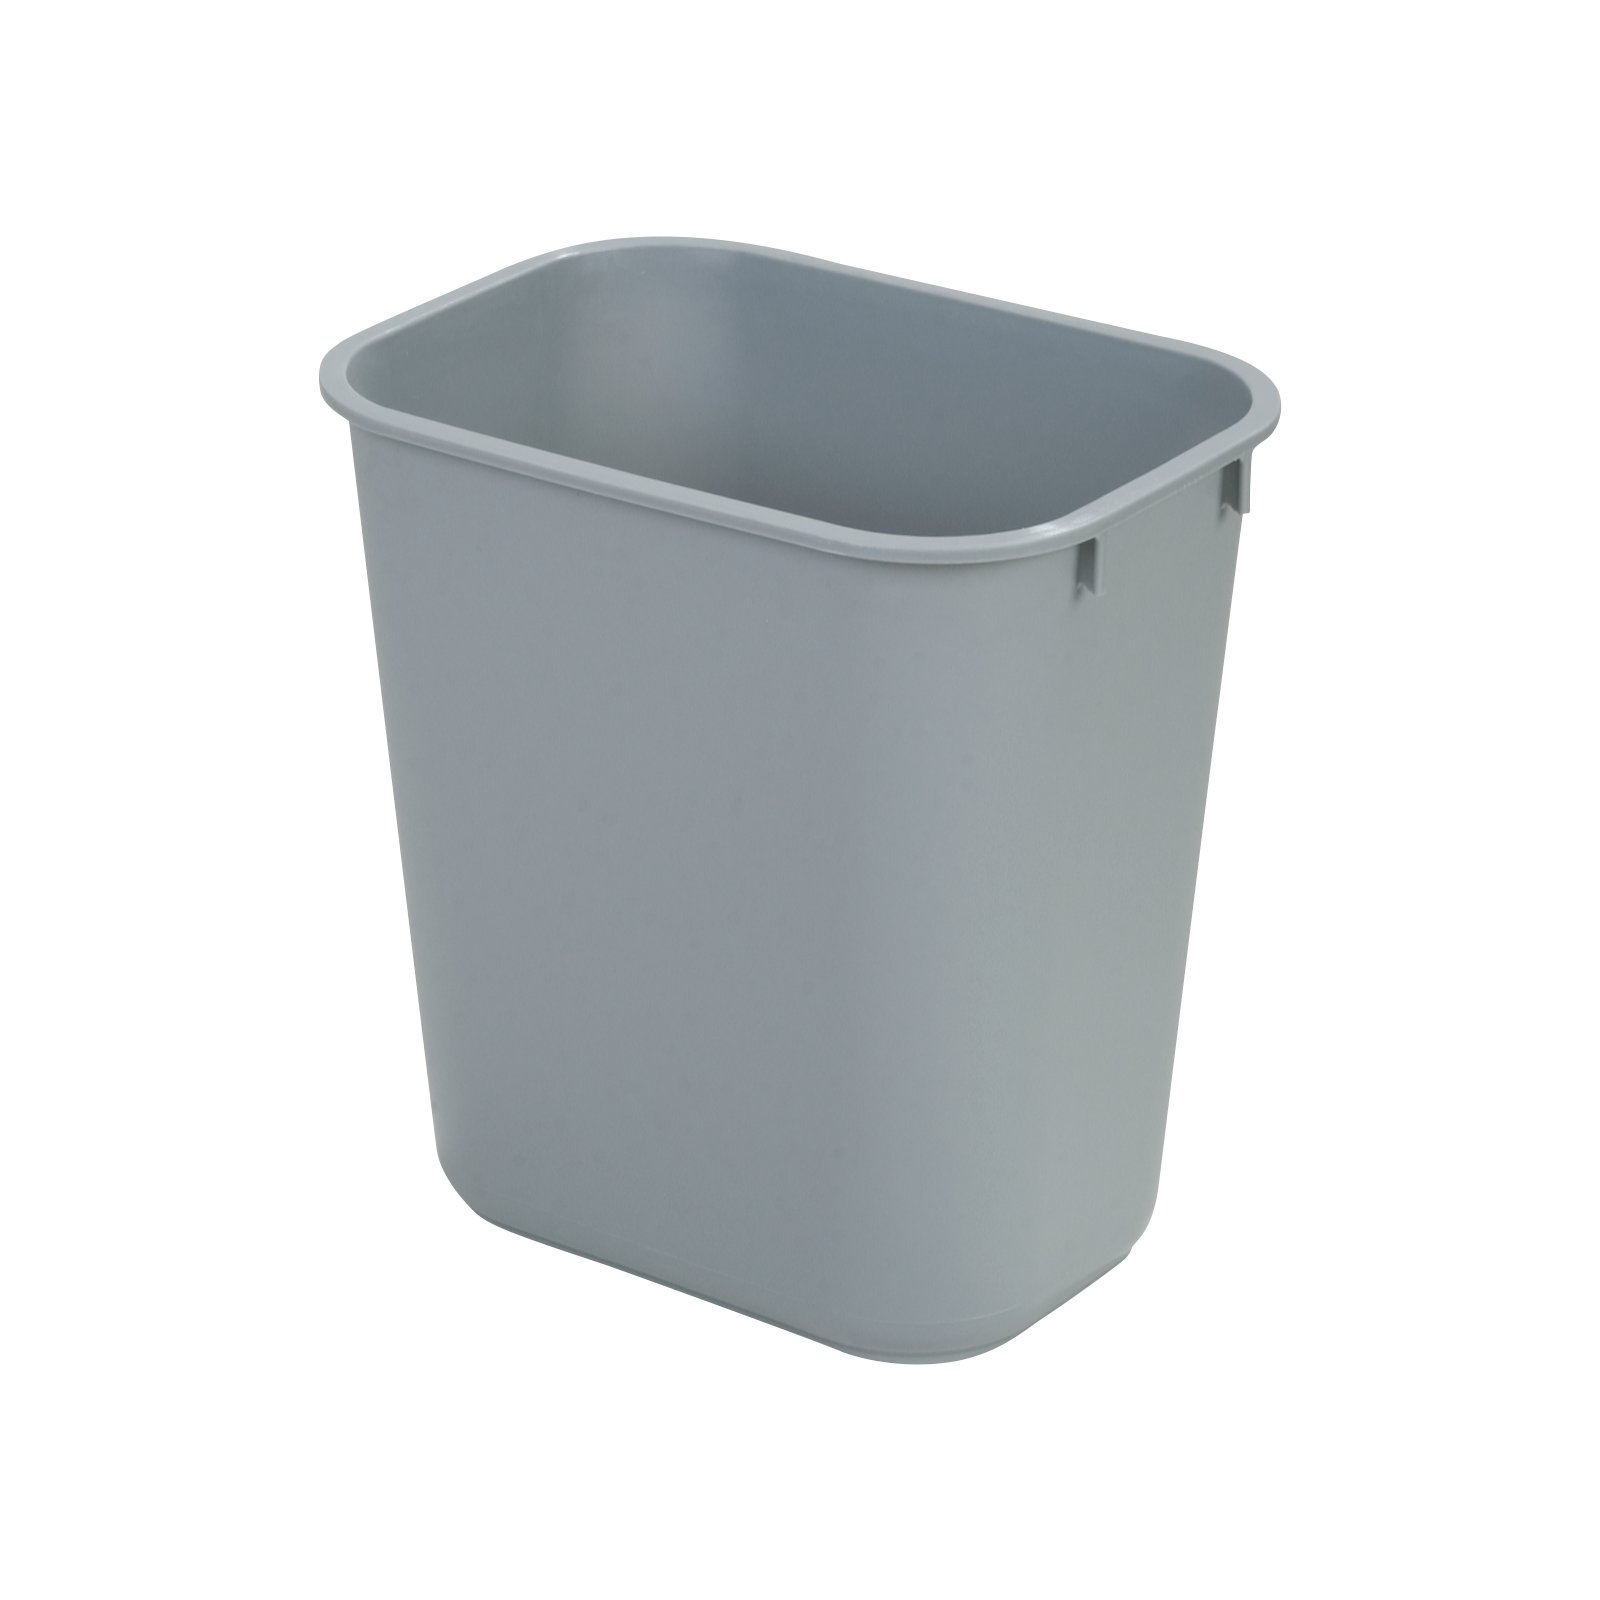 34291323   Small Rectangle Office Wastebasket Trash Can 13 Quart   Gray